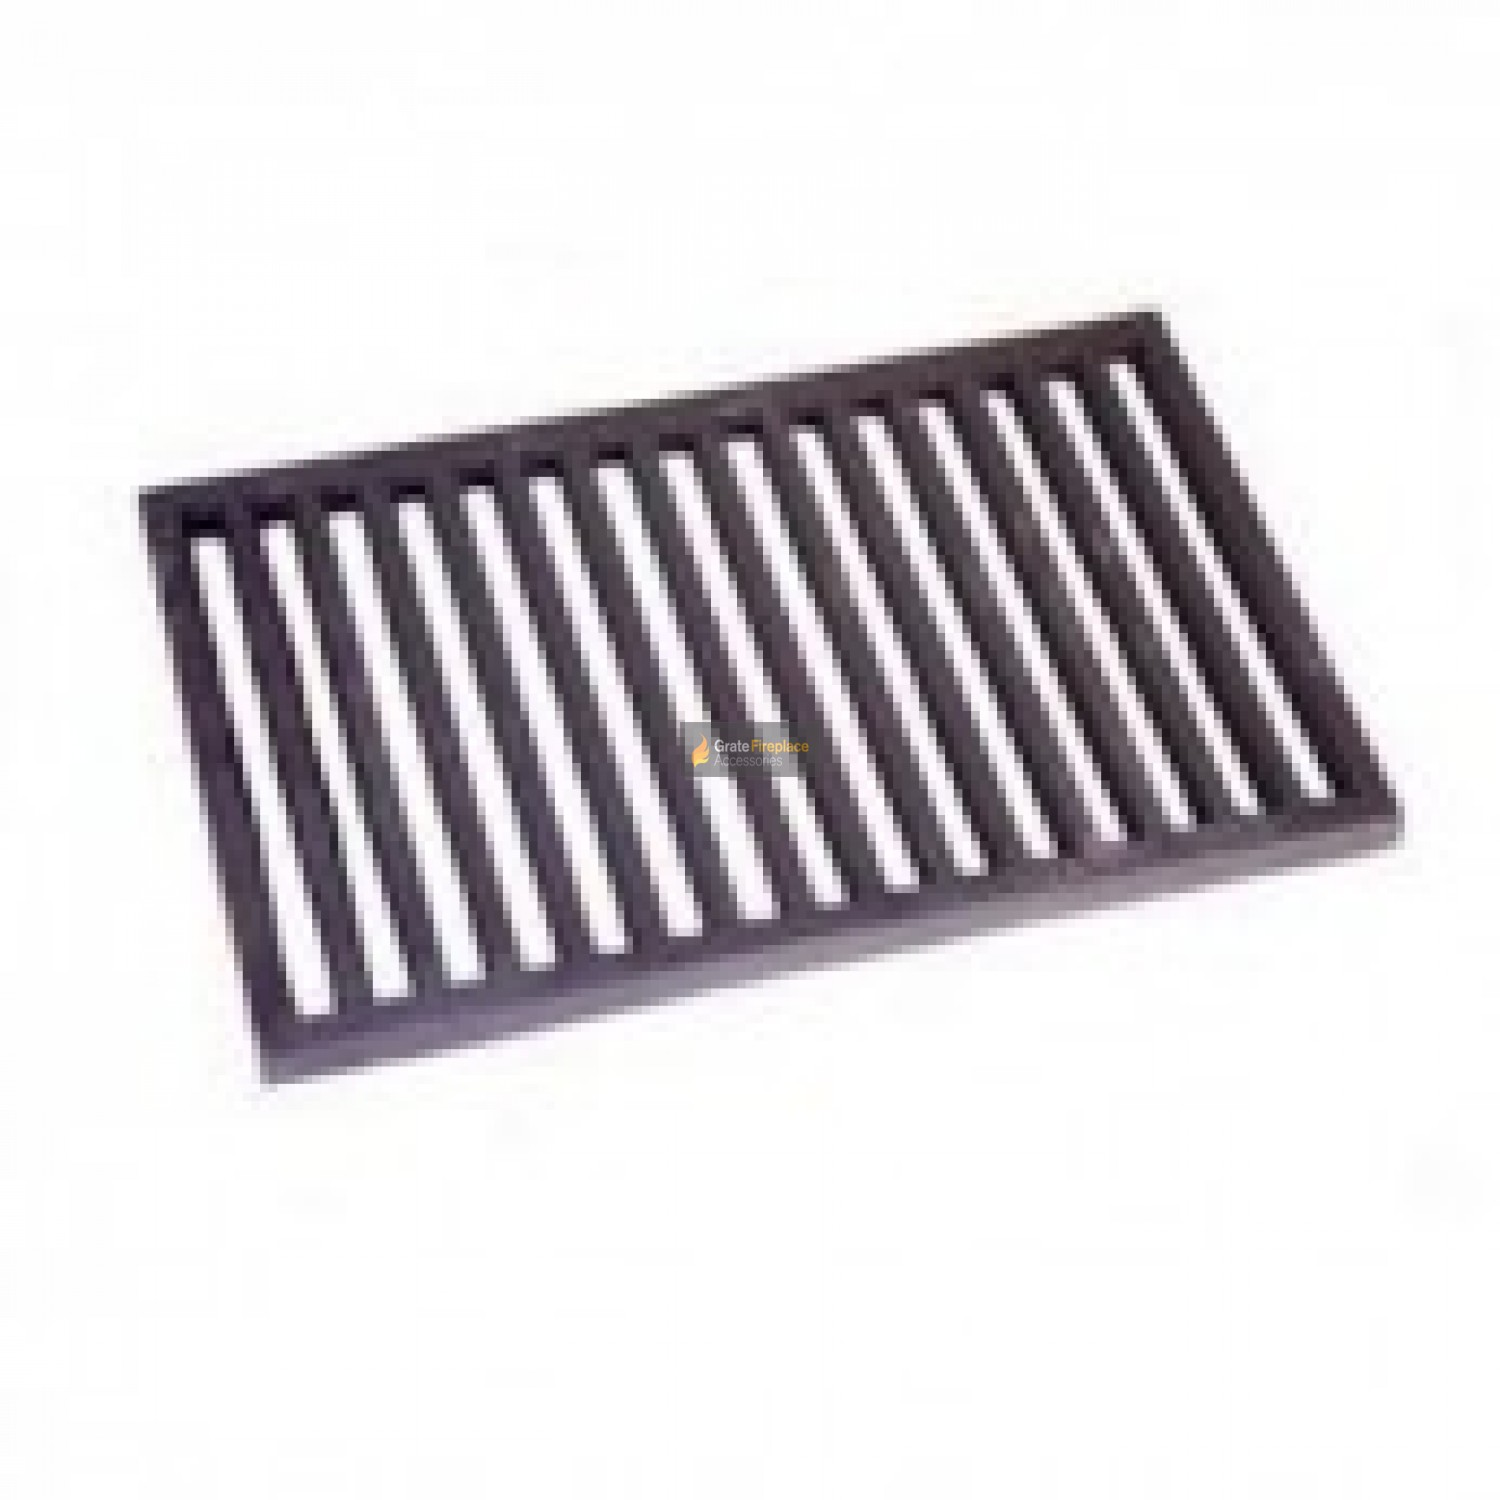 18 Inch Fireplace Grate 18 Inch Spanish Valencia Dog Basket Fire Grate Flat Cast Iron